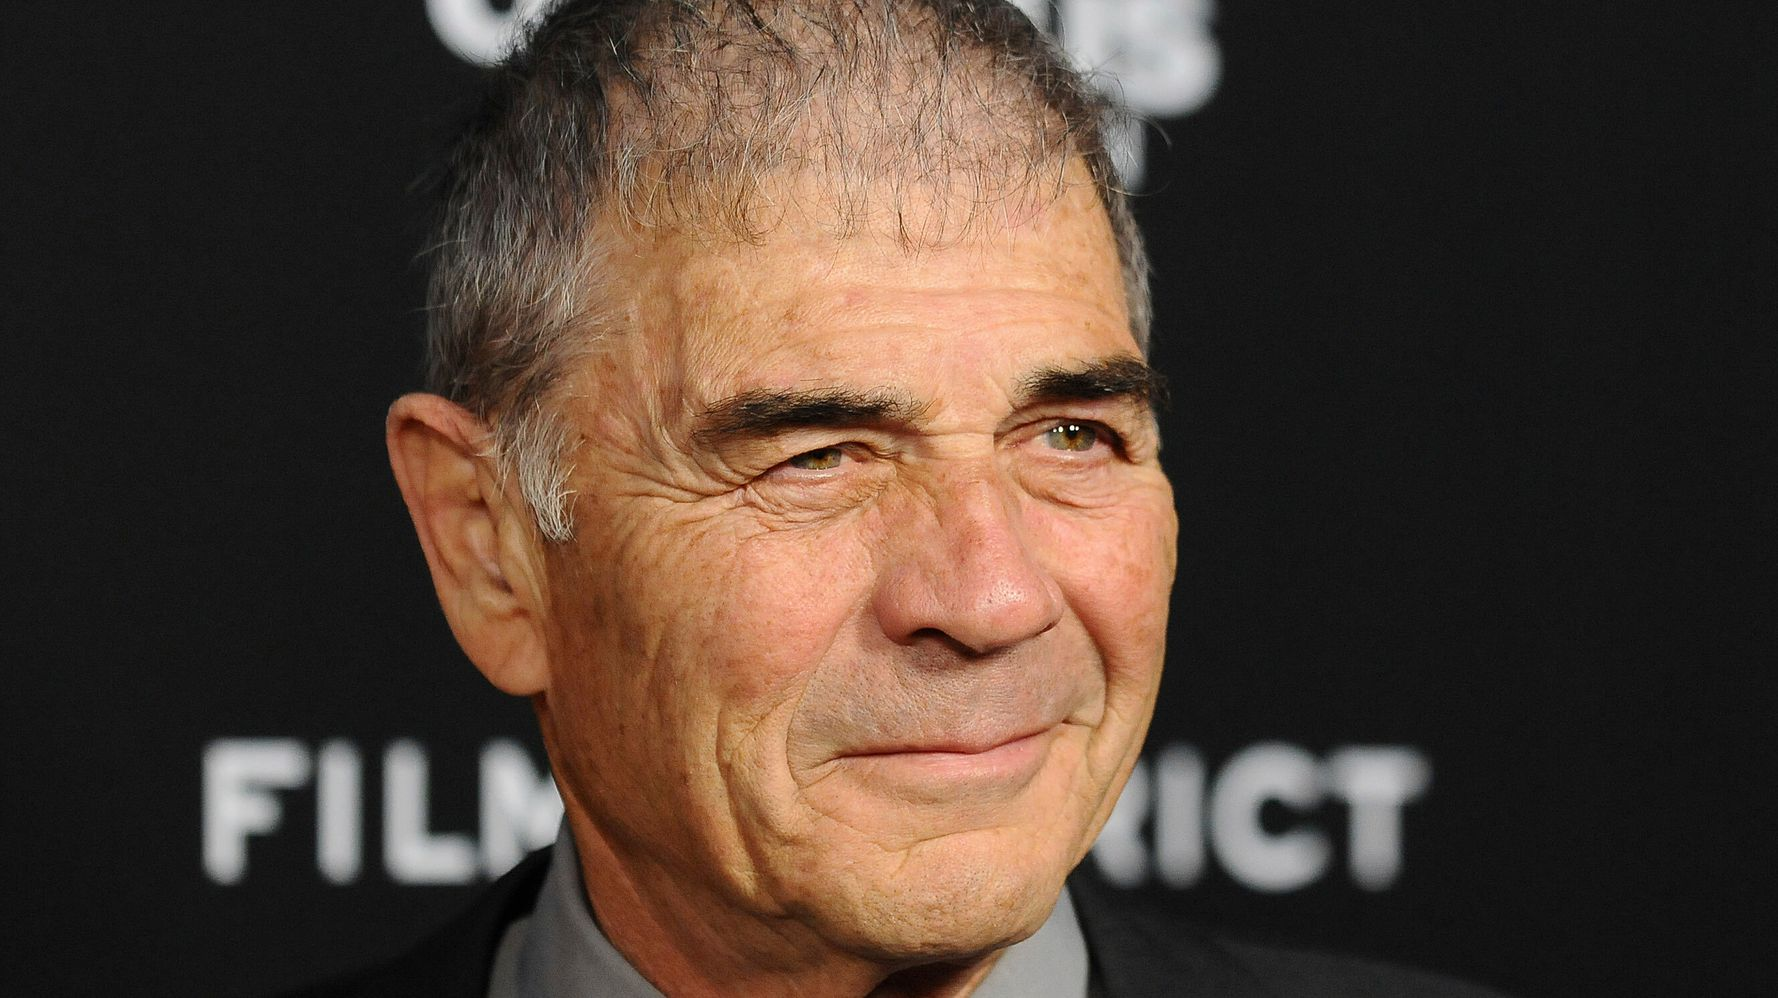 Robert Forster, Star Of 'Jackie Brown,' Dead At 78